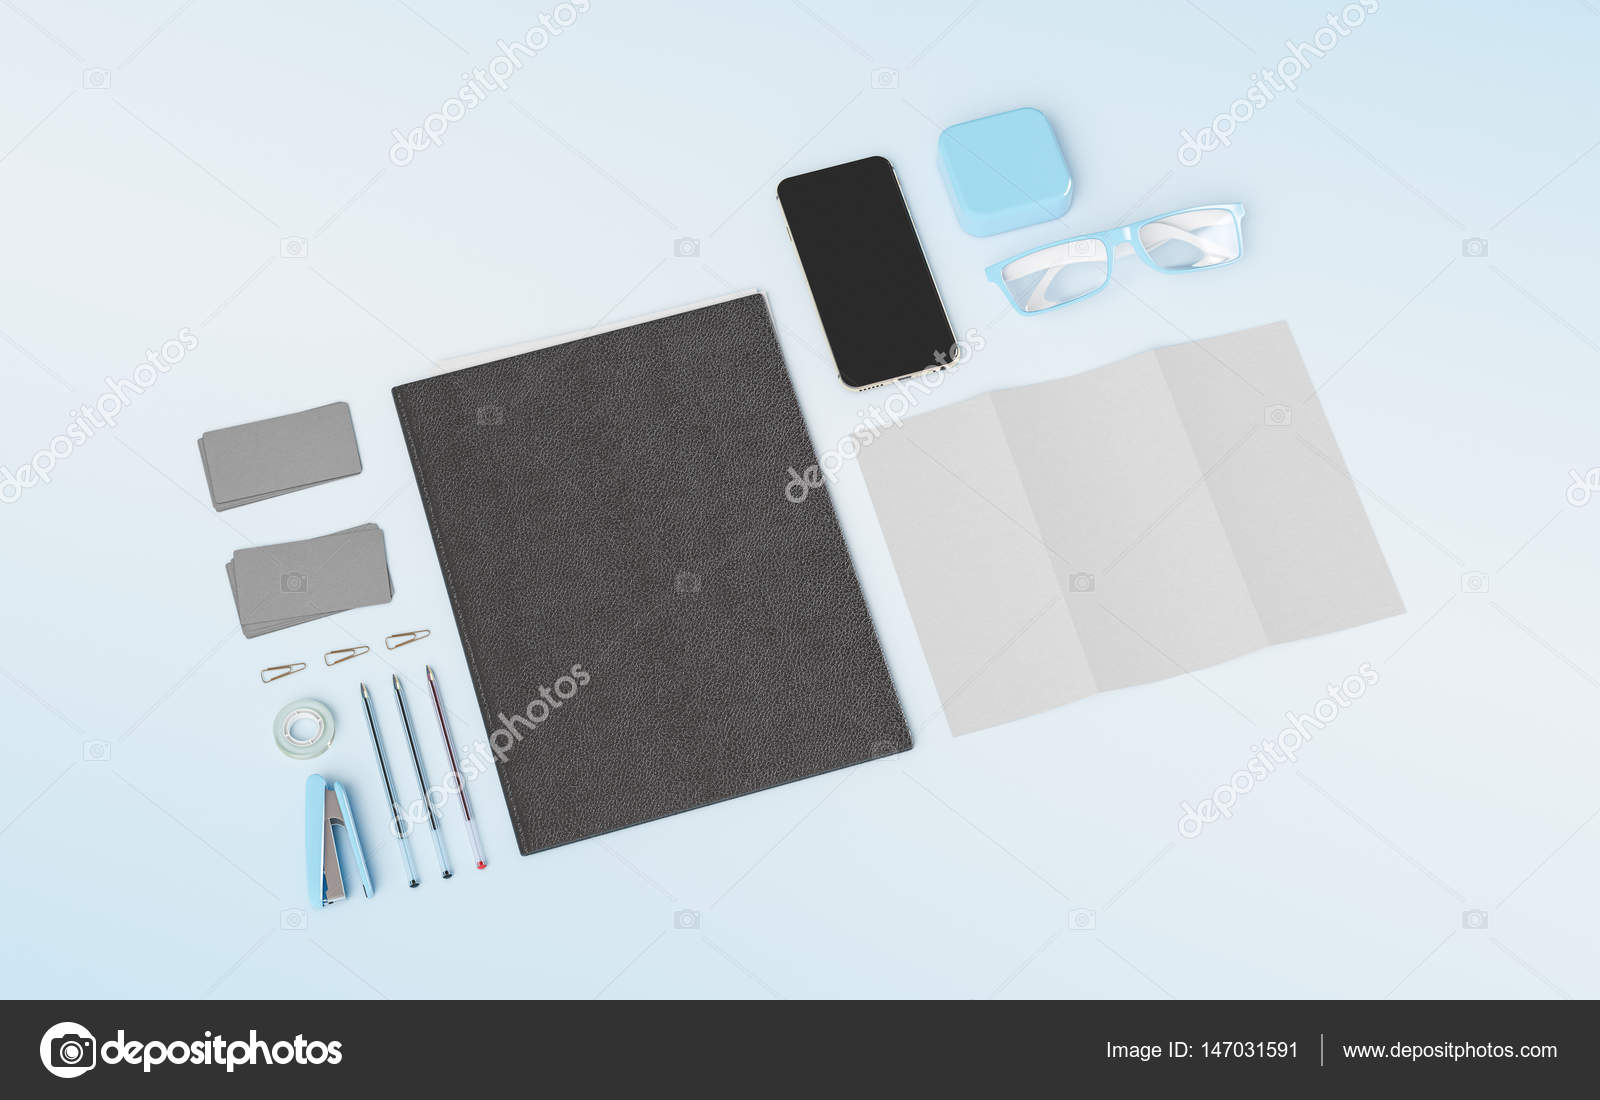 Products Branding Mockup Template Office Supplies Gadgets 3D Illustration High Quality Photo By Studiotan